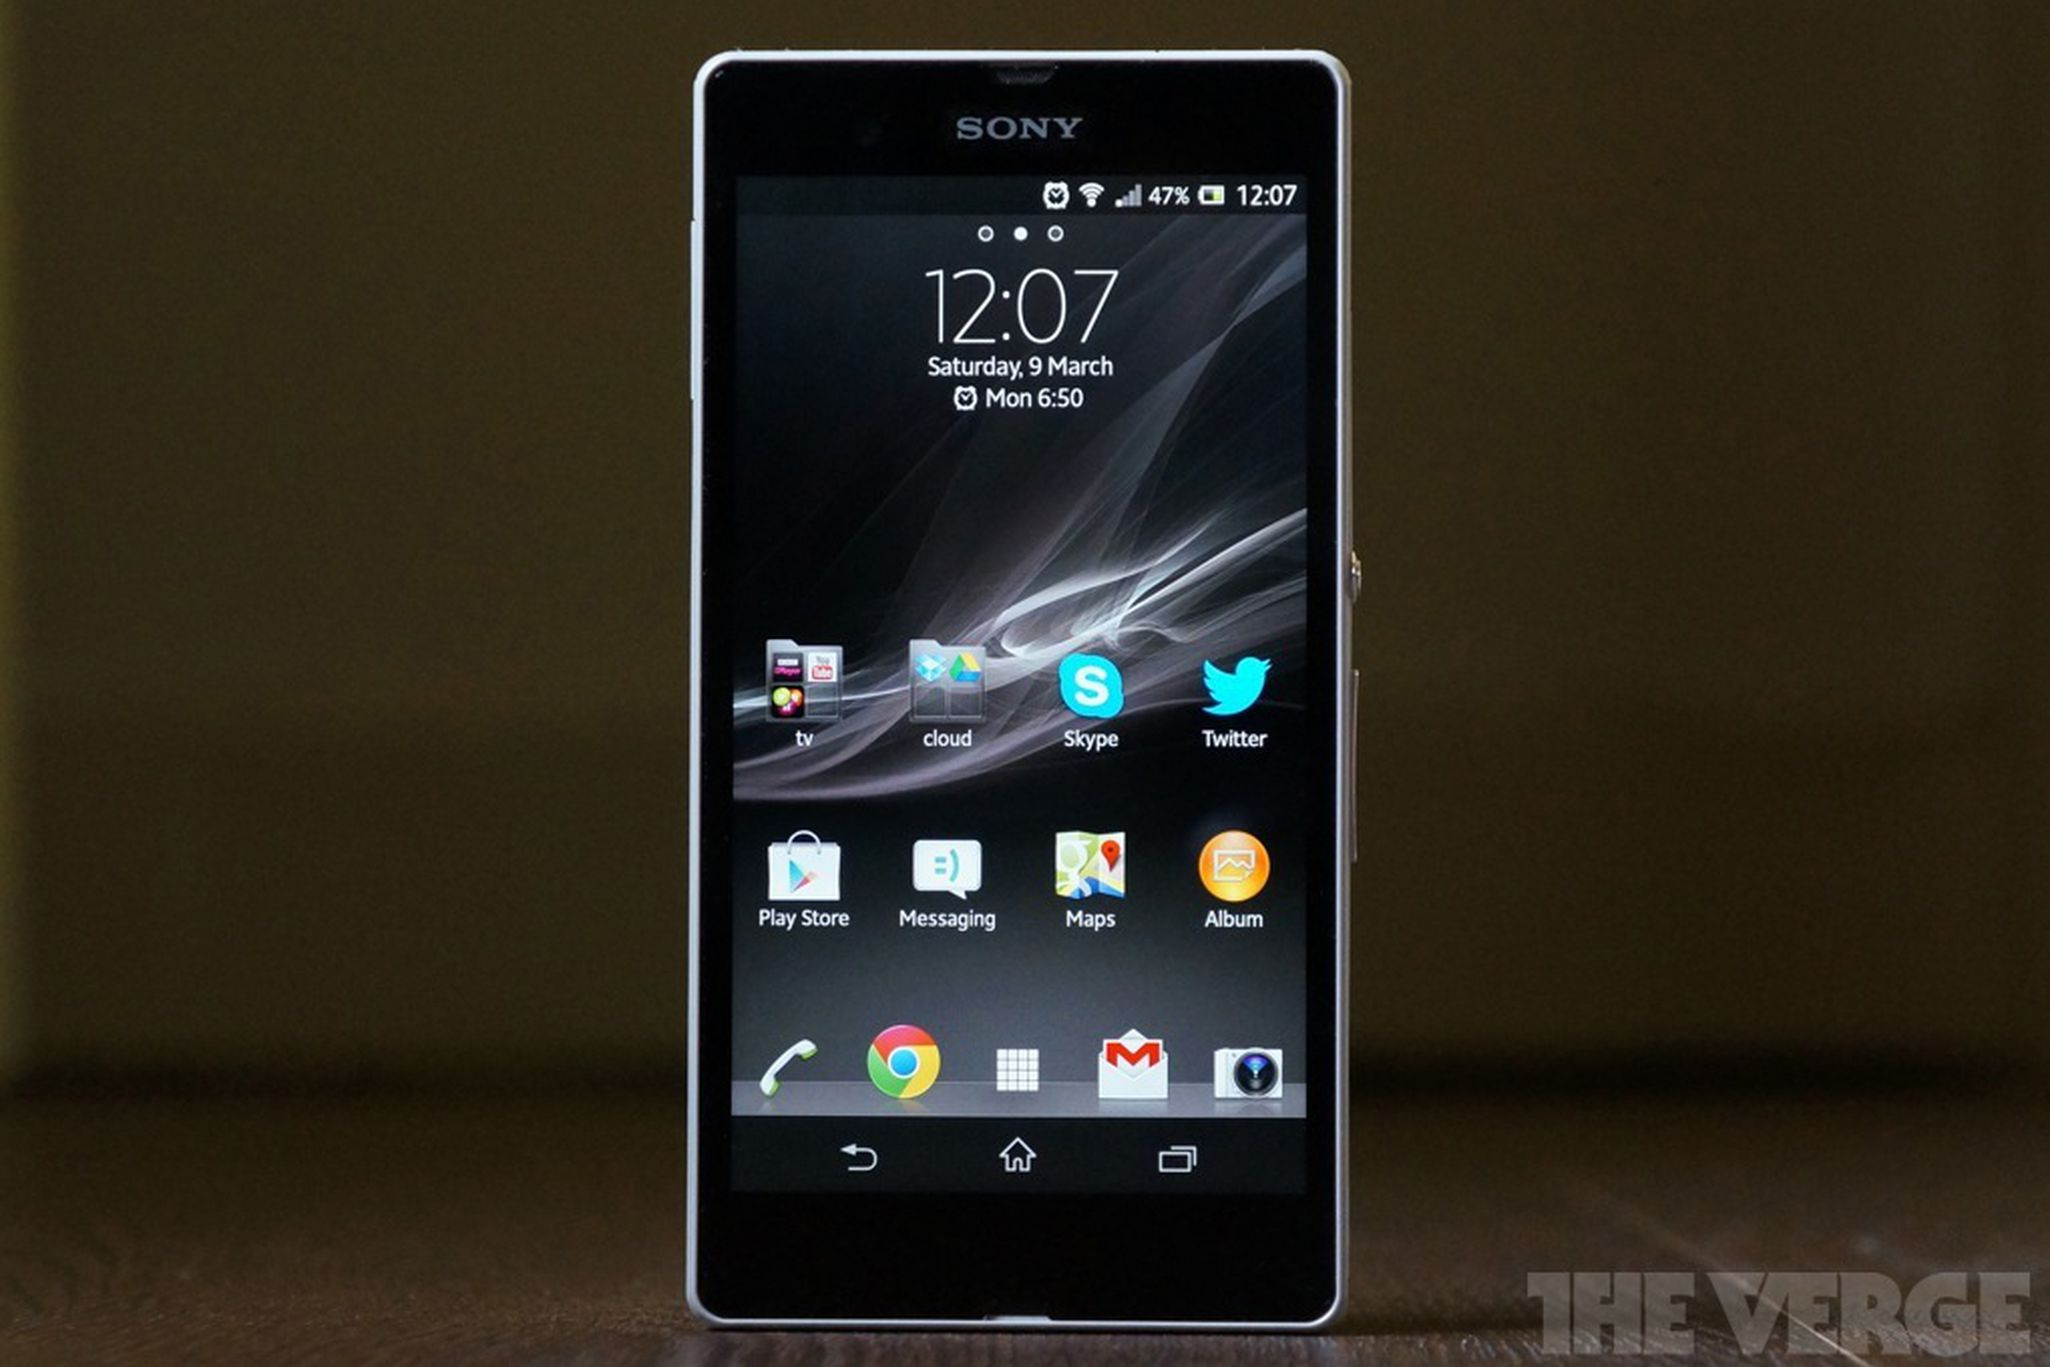 Sony Xperia Z review | The Verge